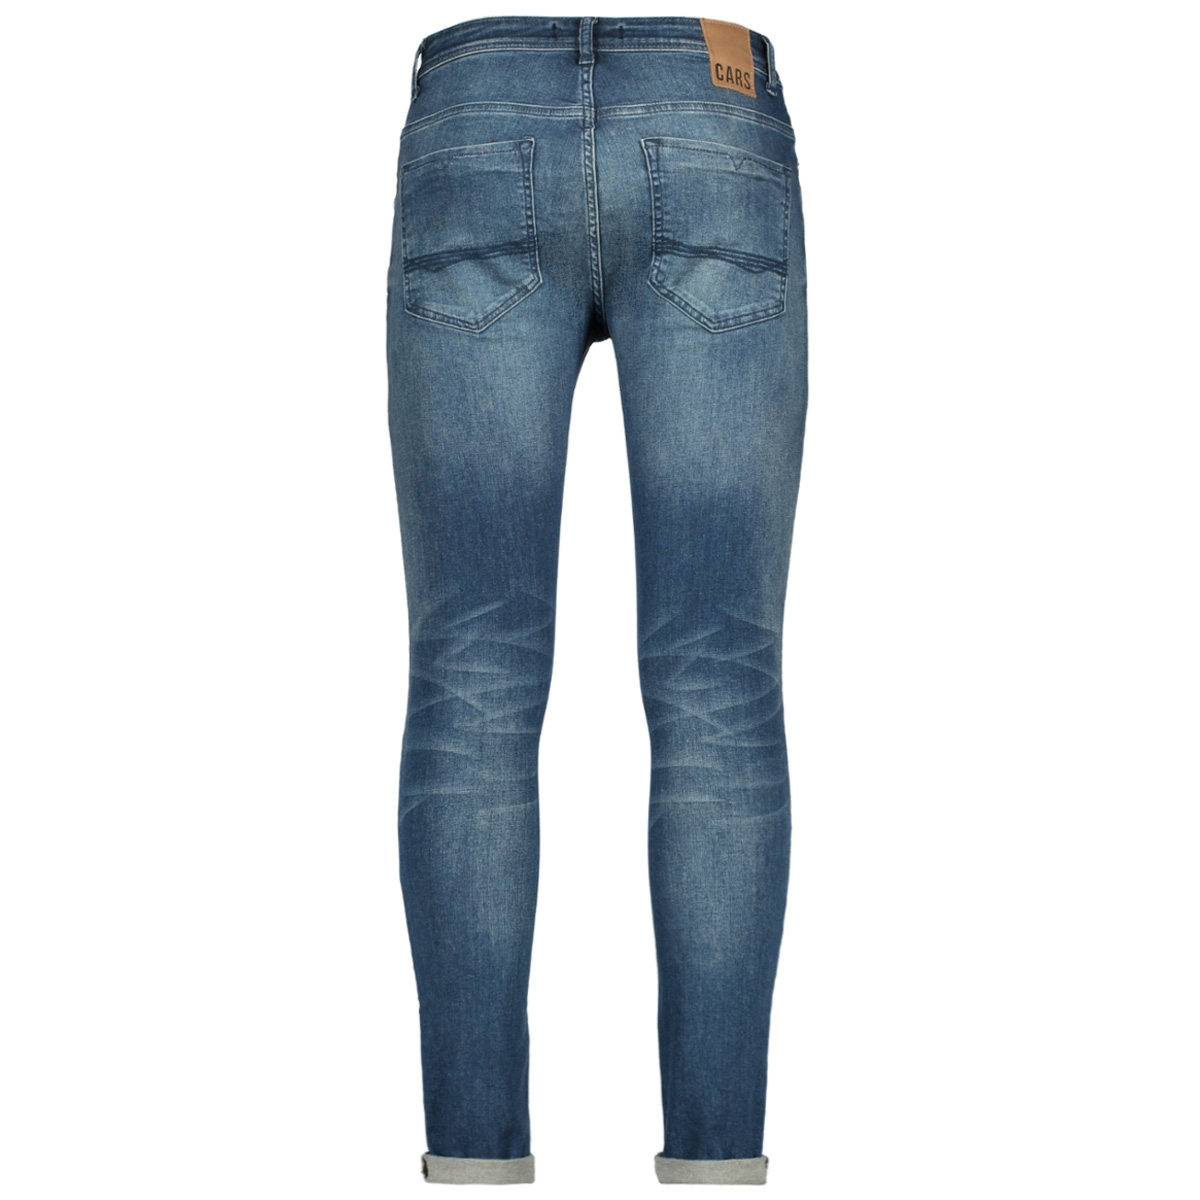 dust super skinny 7552879 cars jeans green coast used